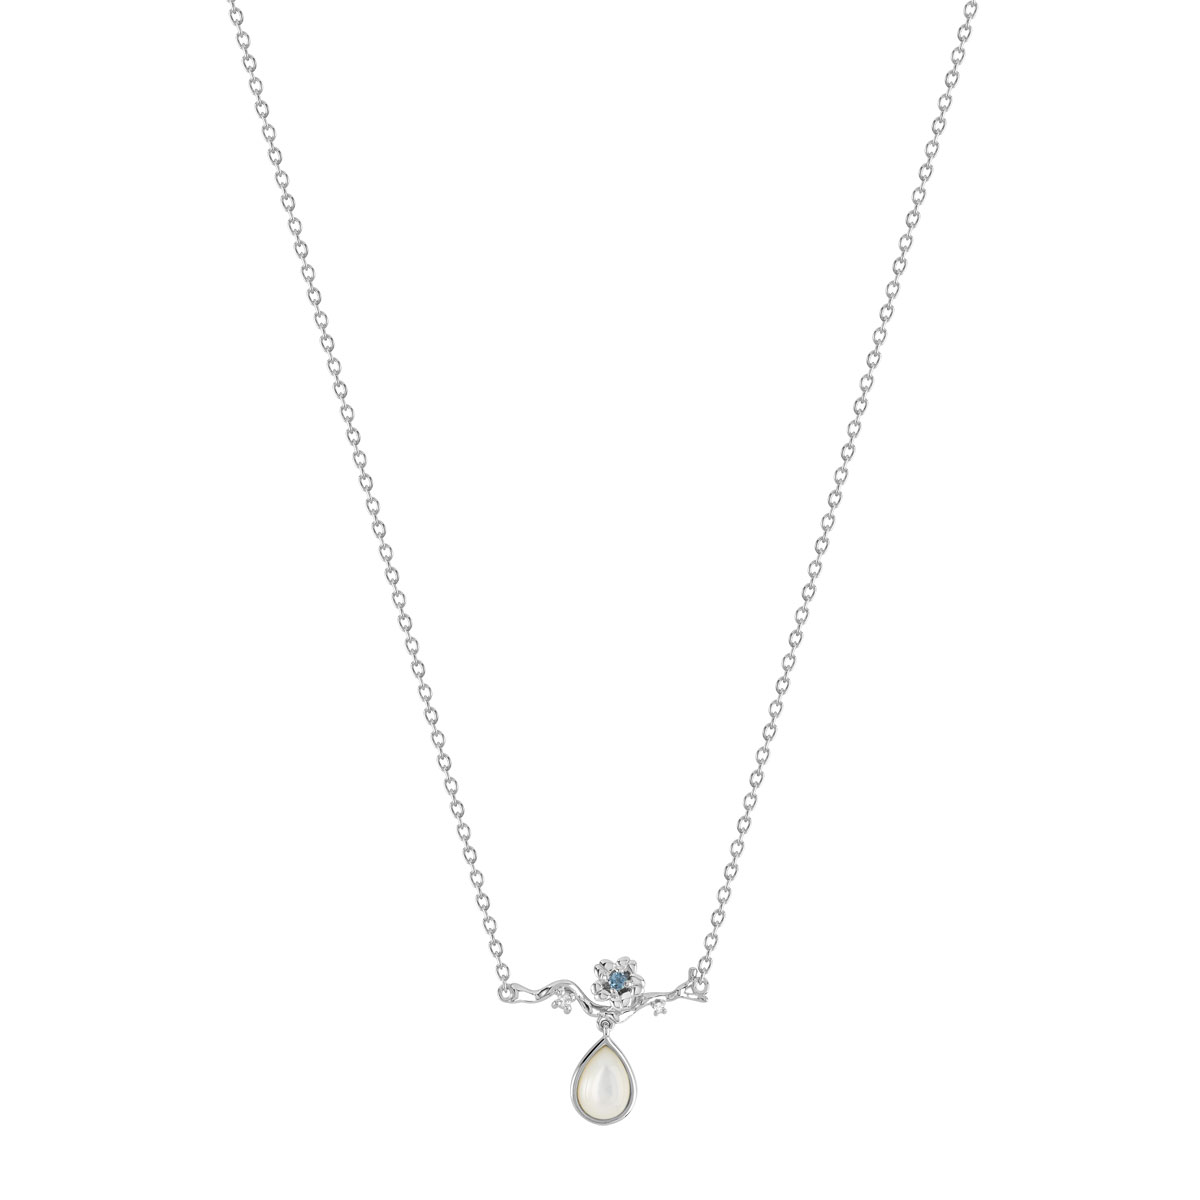 Collier or 375 blanc topaze bleue nacre et diamant - vue 1